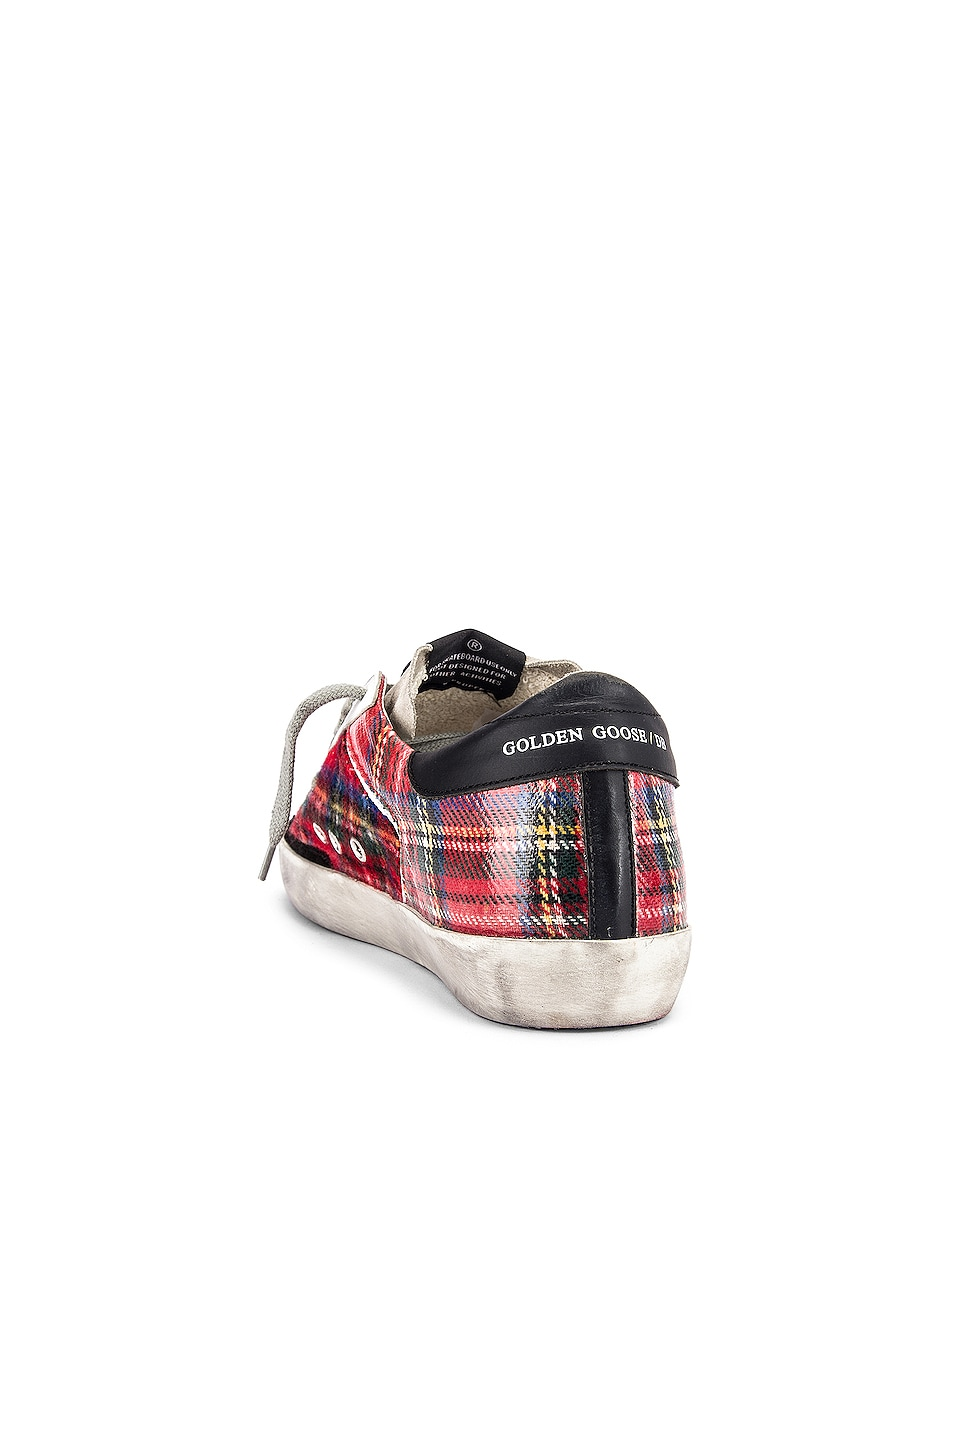 Image 3 of Golden Goose Superstar Sneaker in Double Check & White